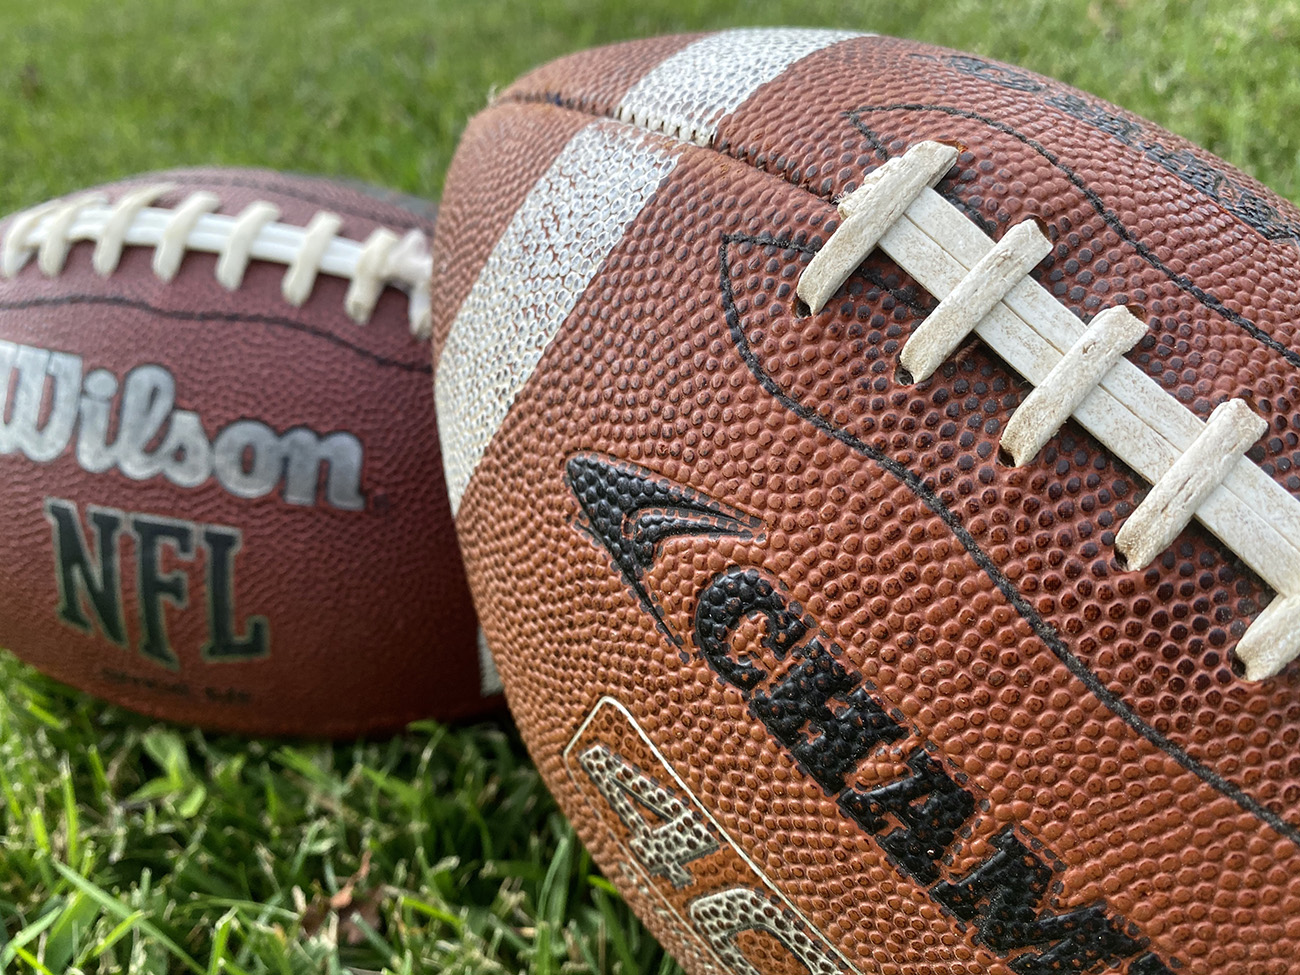 Why the upcoming high school sports season could be life changing for CMS student-athletes